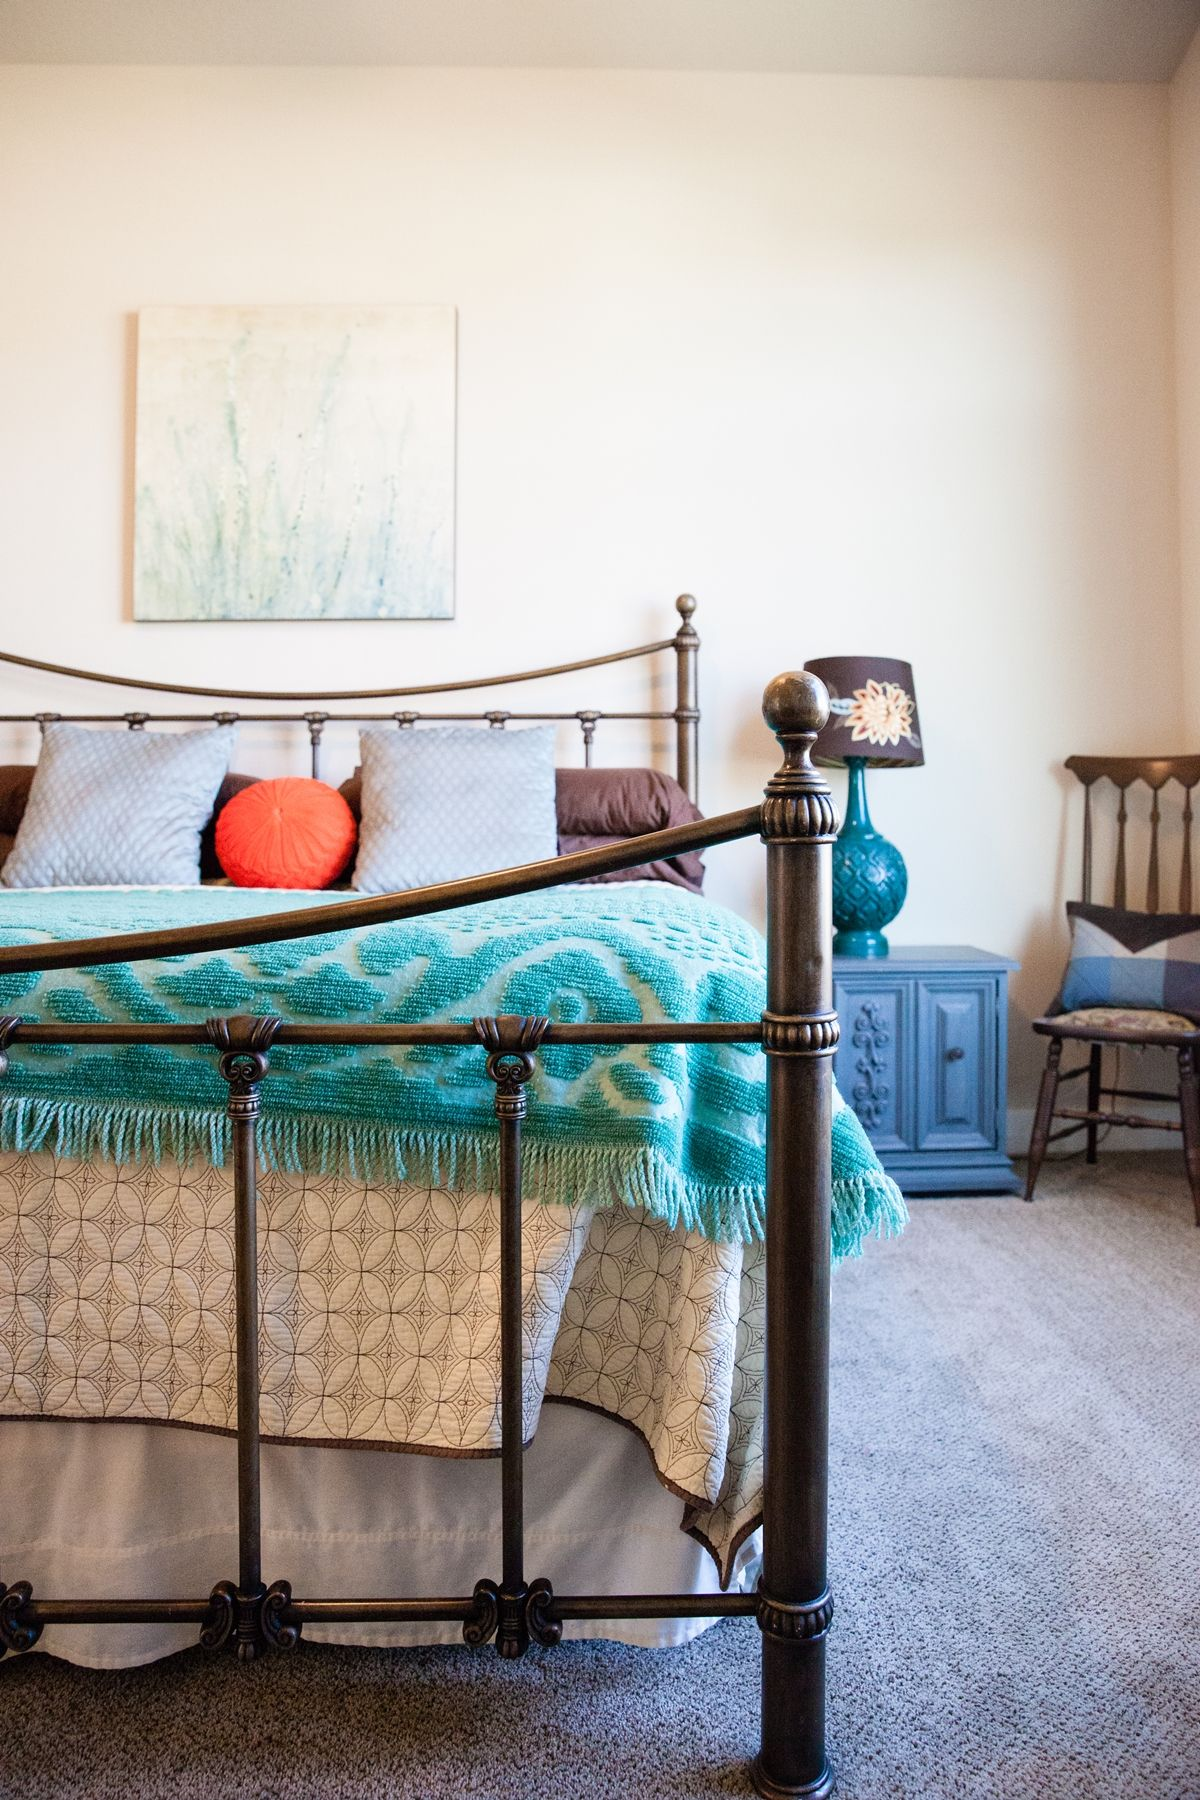 Mix colors in a master bedroom